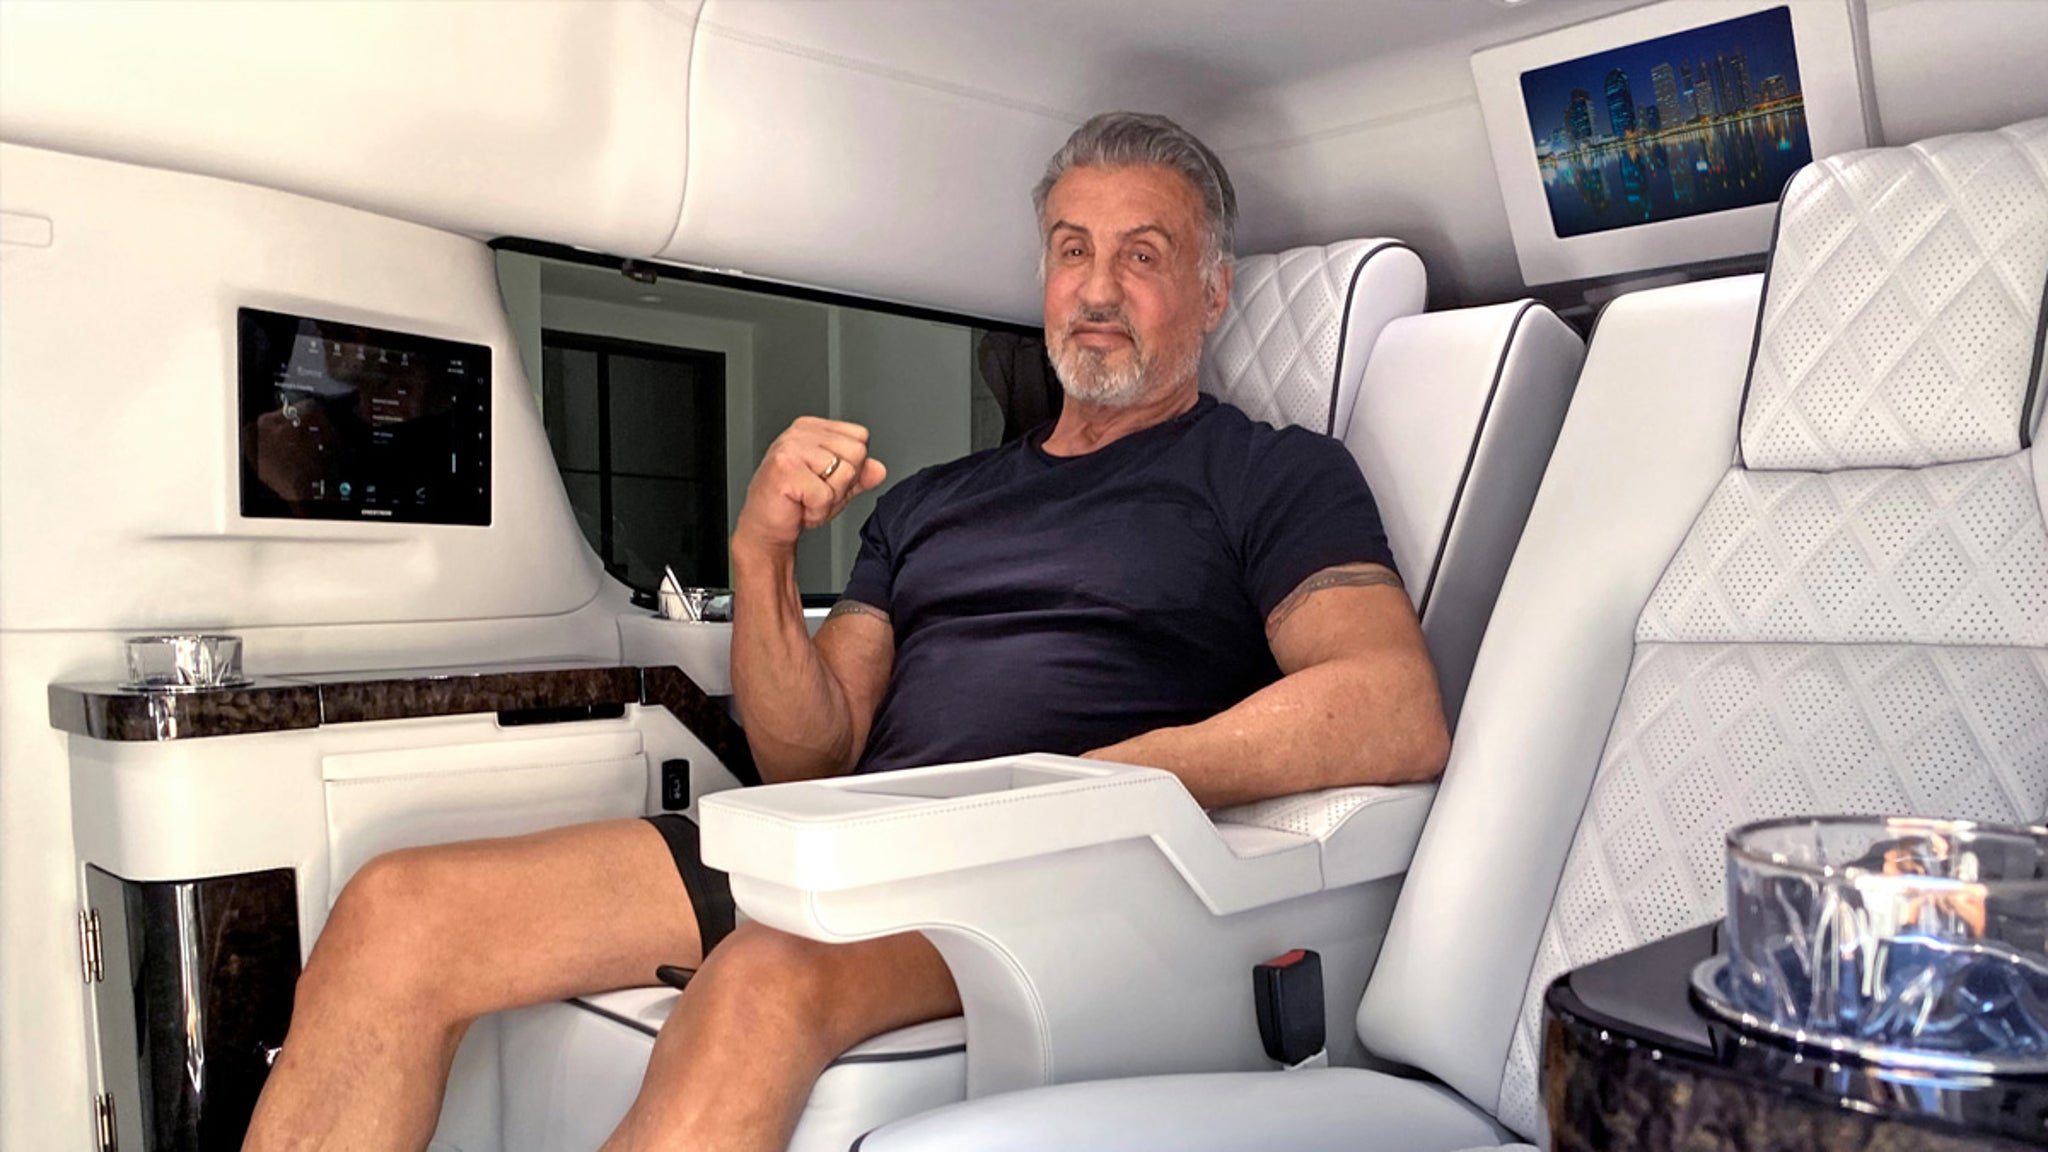 Sylvester Stallone Unloading Siiiiick Escalde for $350k Gonna (Look) Fly Now!!!